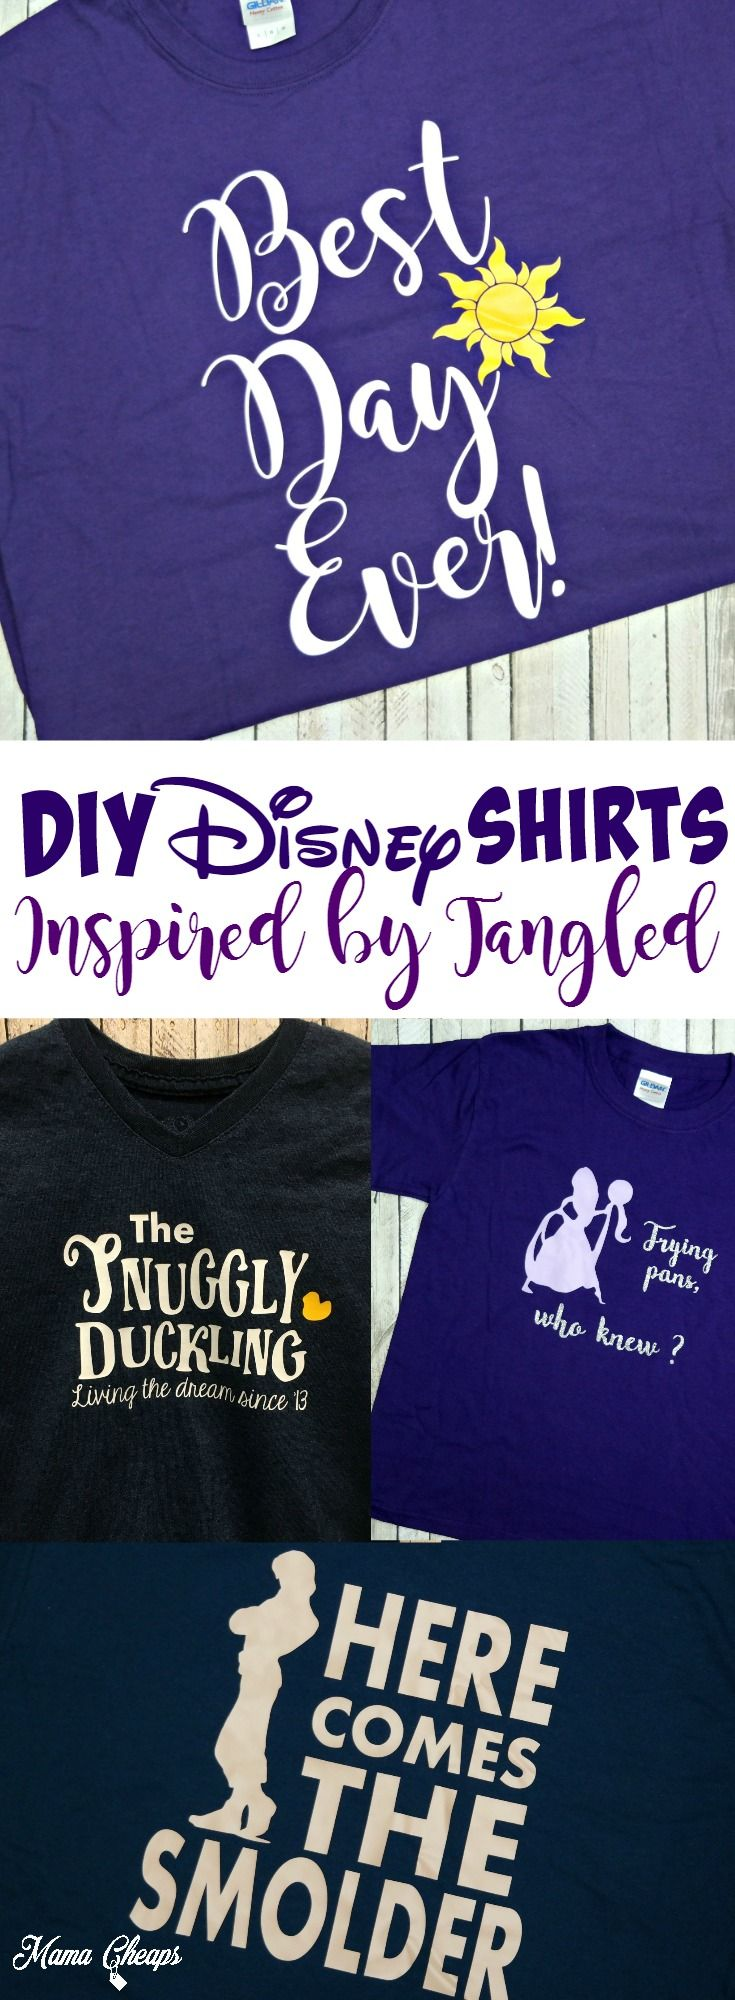 Funny family vacation t shirt ideas 1000 ideas about family vacation - Diy Disney Shirts Inspired By Tangled Movie Find More Great Disney Diy Ideas On Mamacheaps